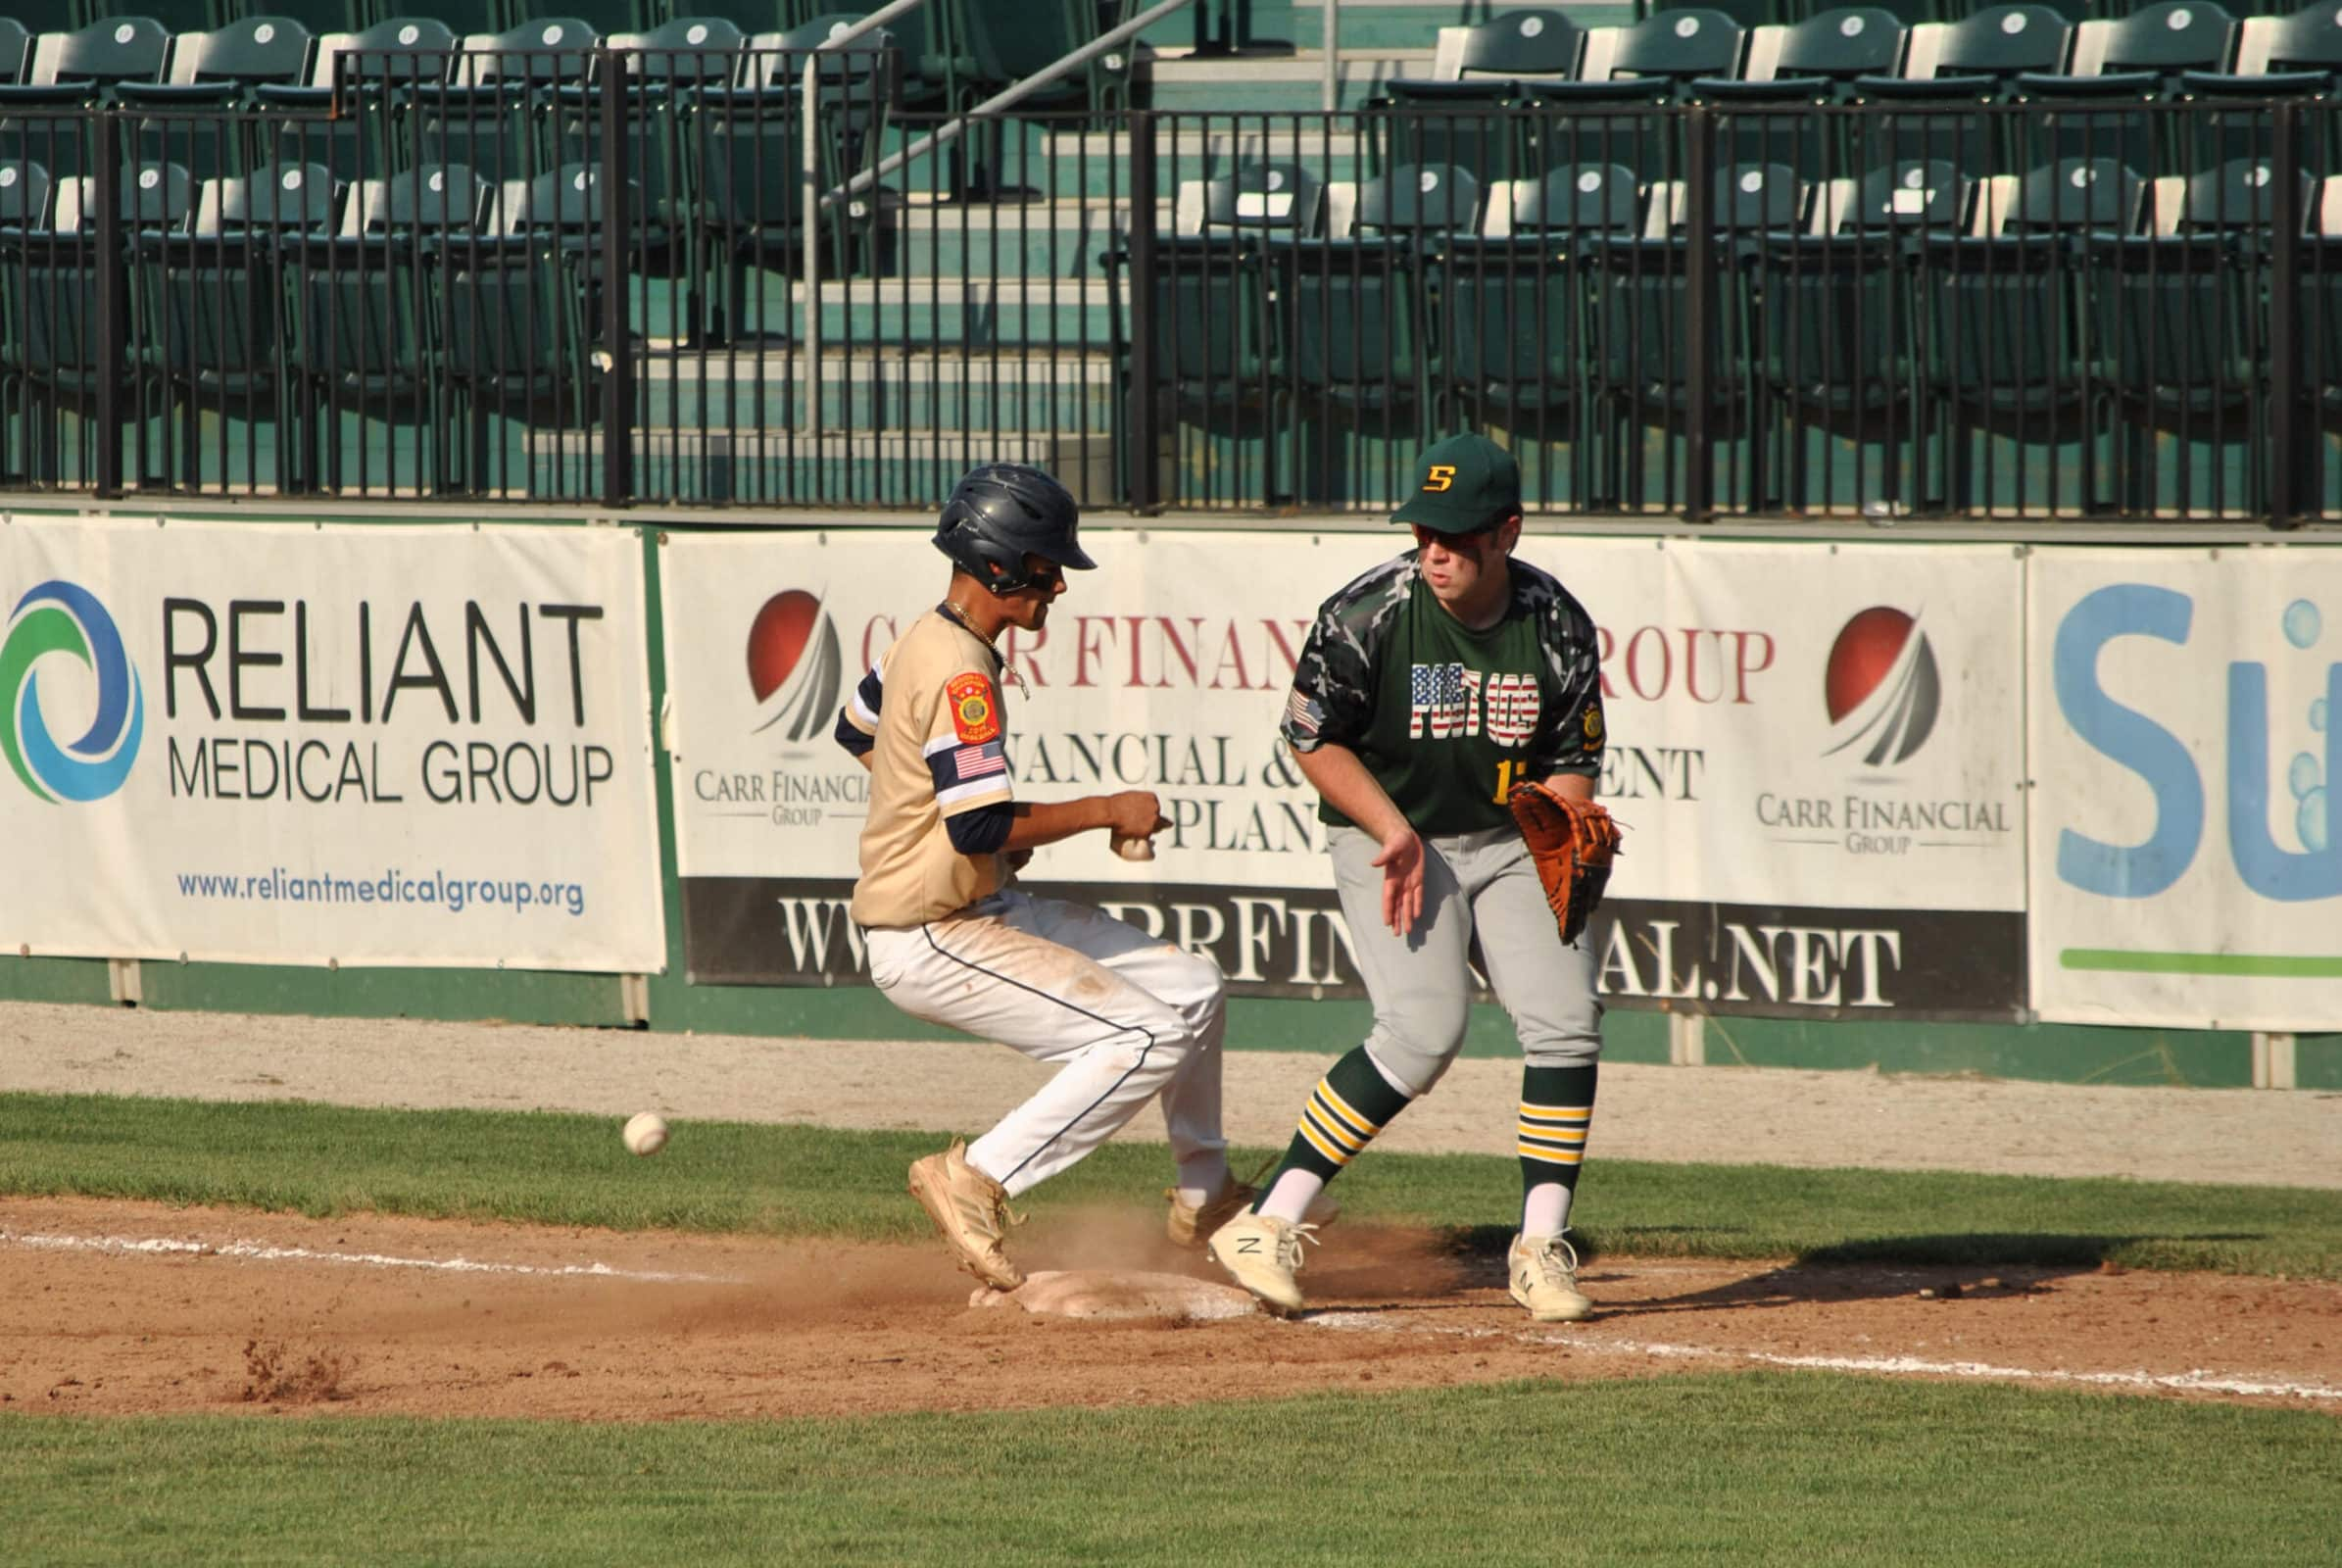 A Shrewsbury baserunner races back to first base after taking a long lead on a pop fly that was caught in the outfield.